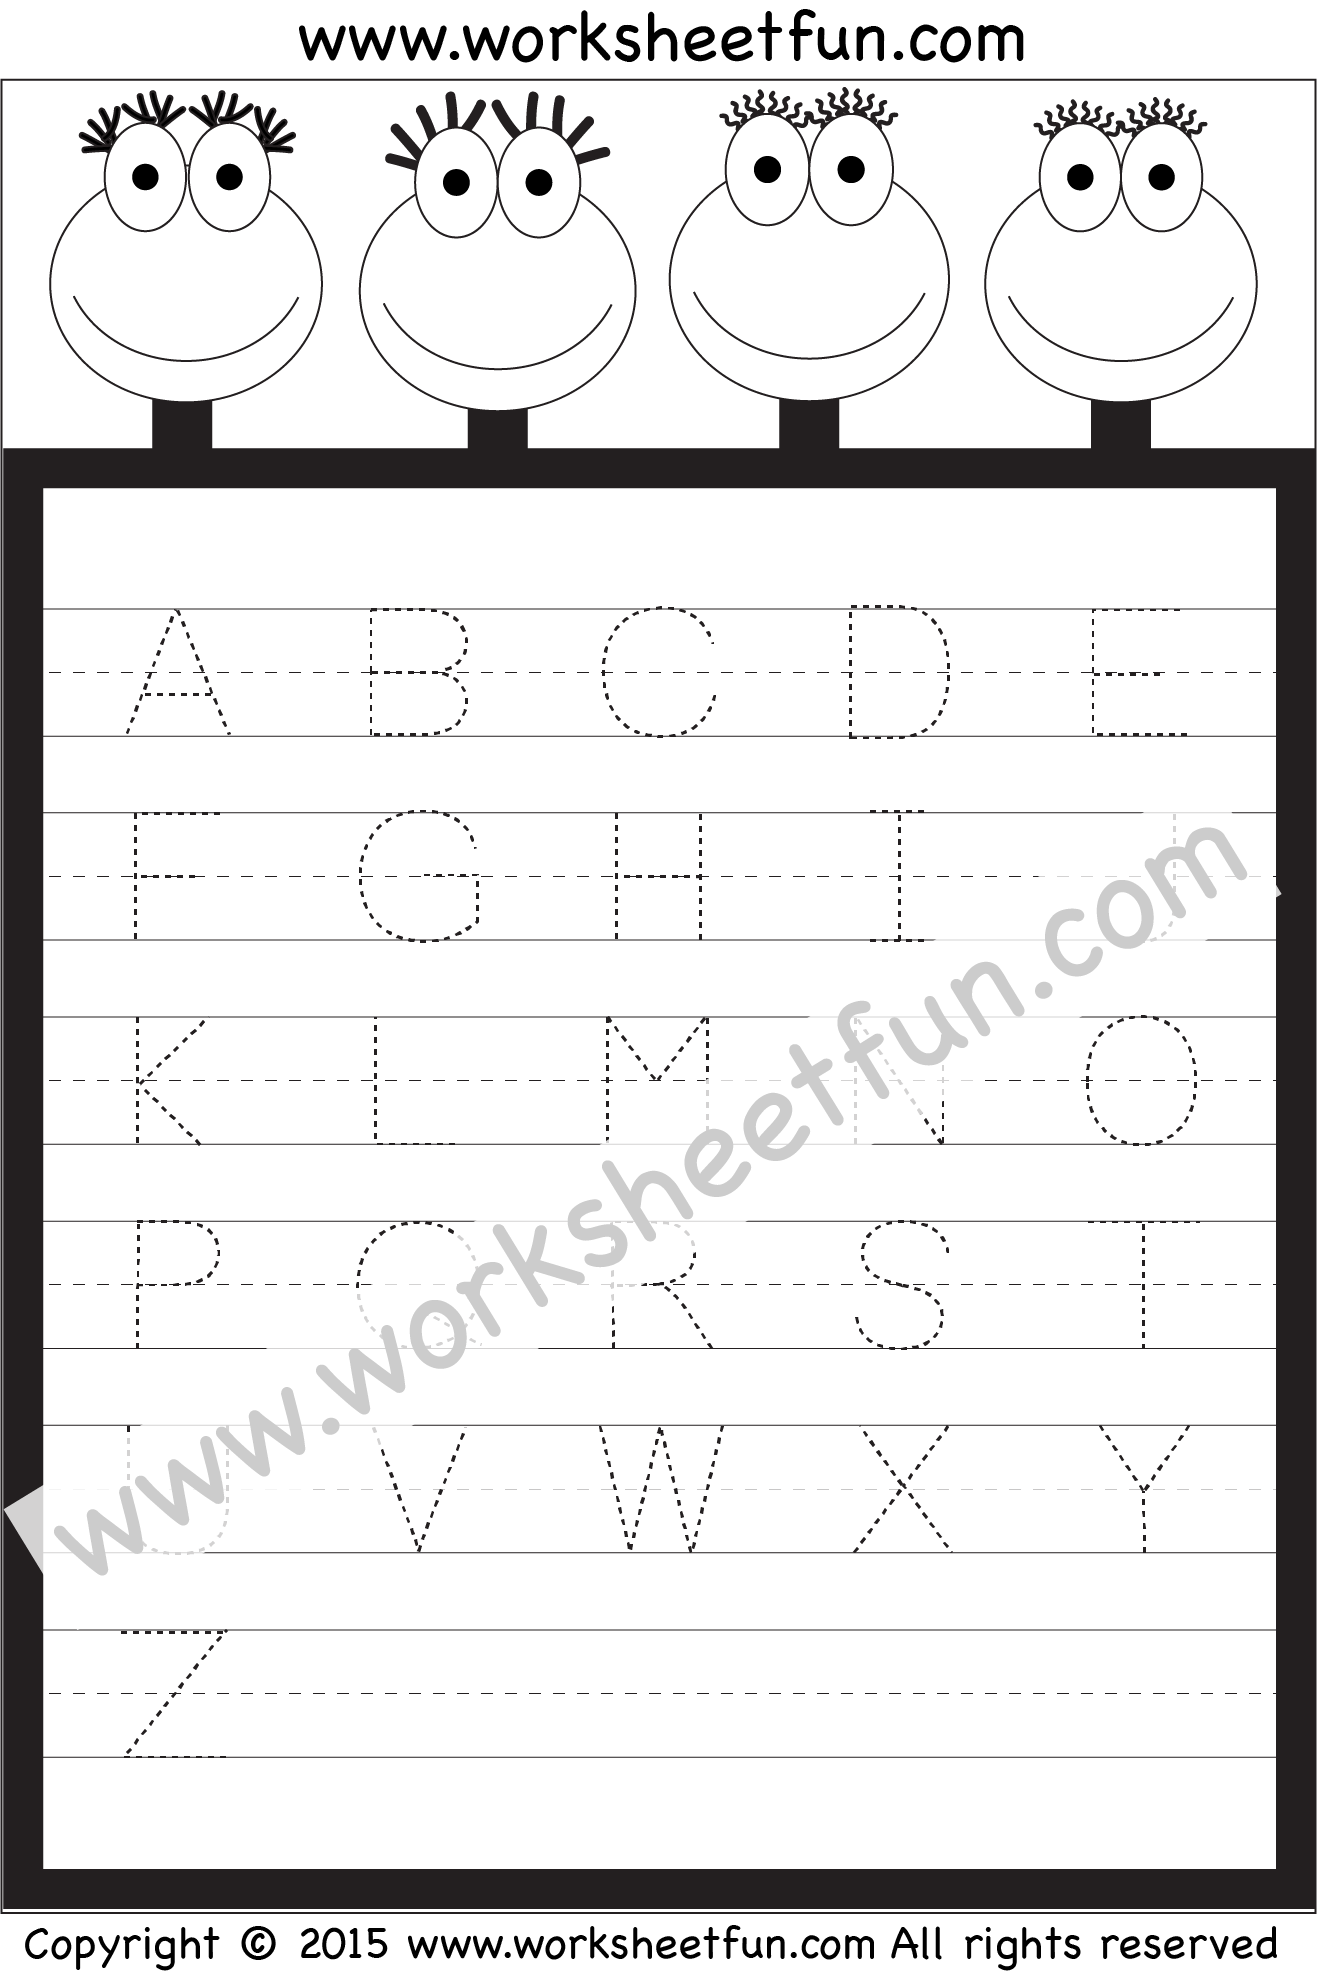 Worksheet ~ Alphabet Tracing Pages Free Printable Writing regarding Letter Tracing Youtube